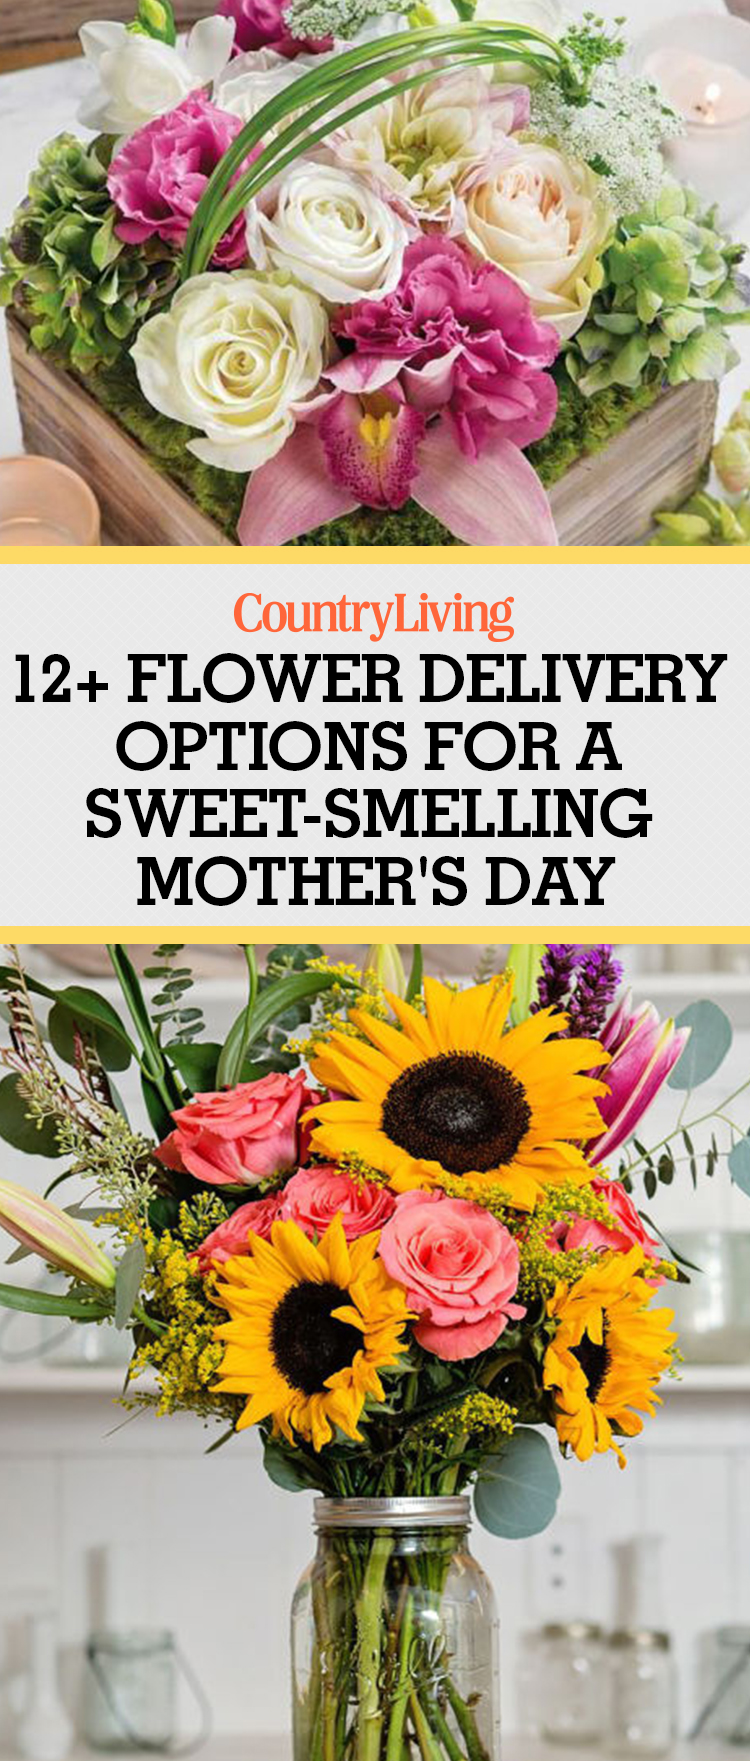 Best bbn delivery mothers day options